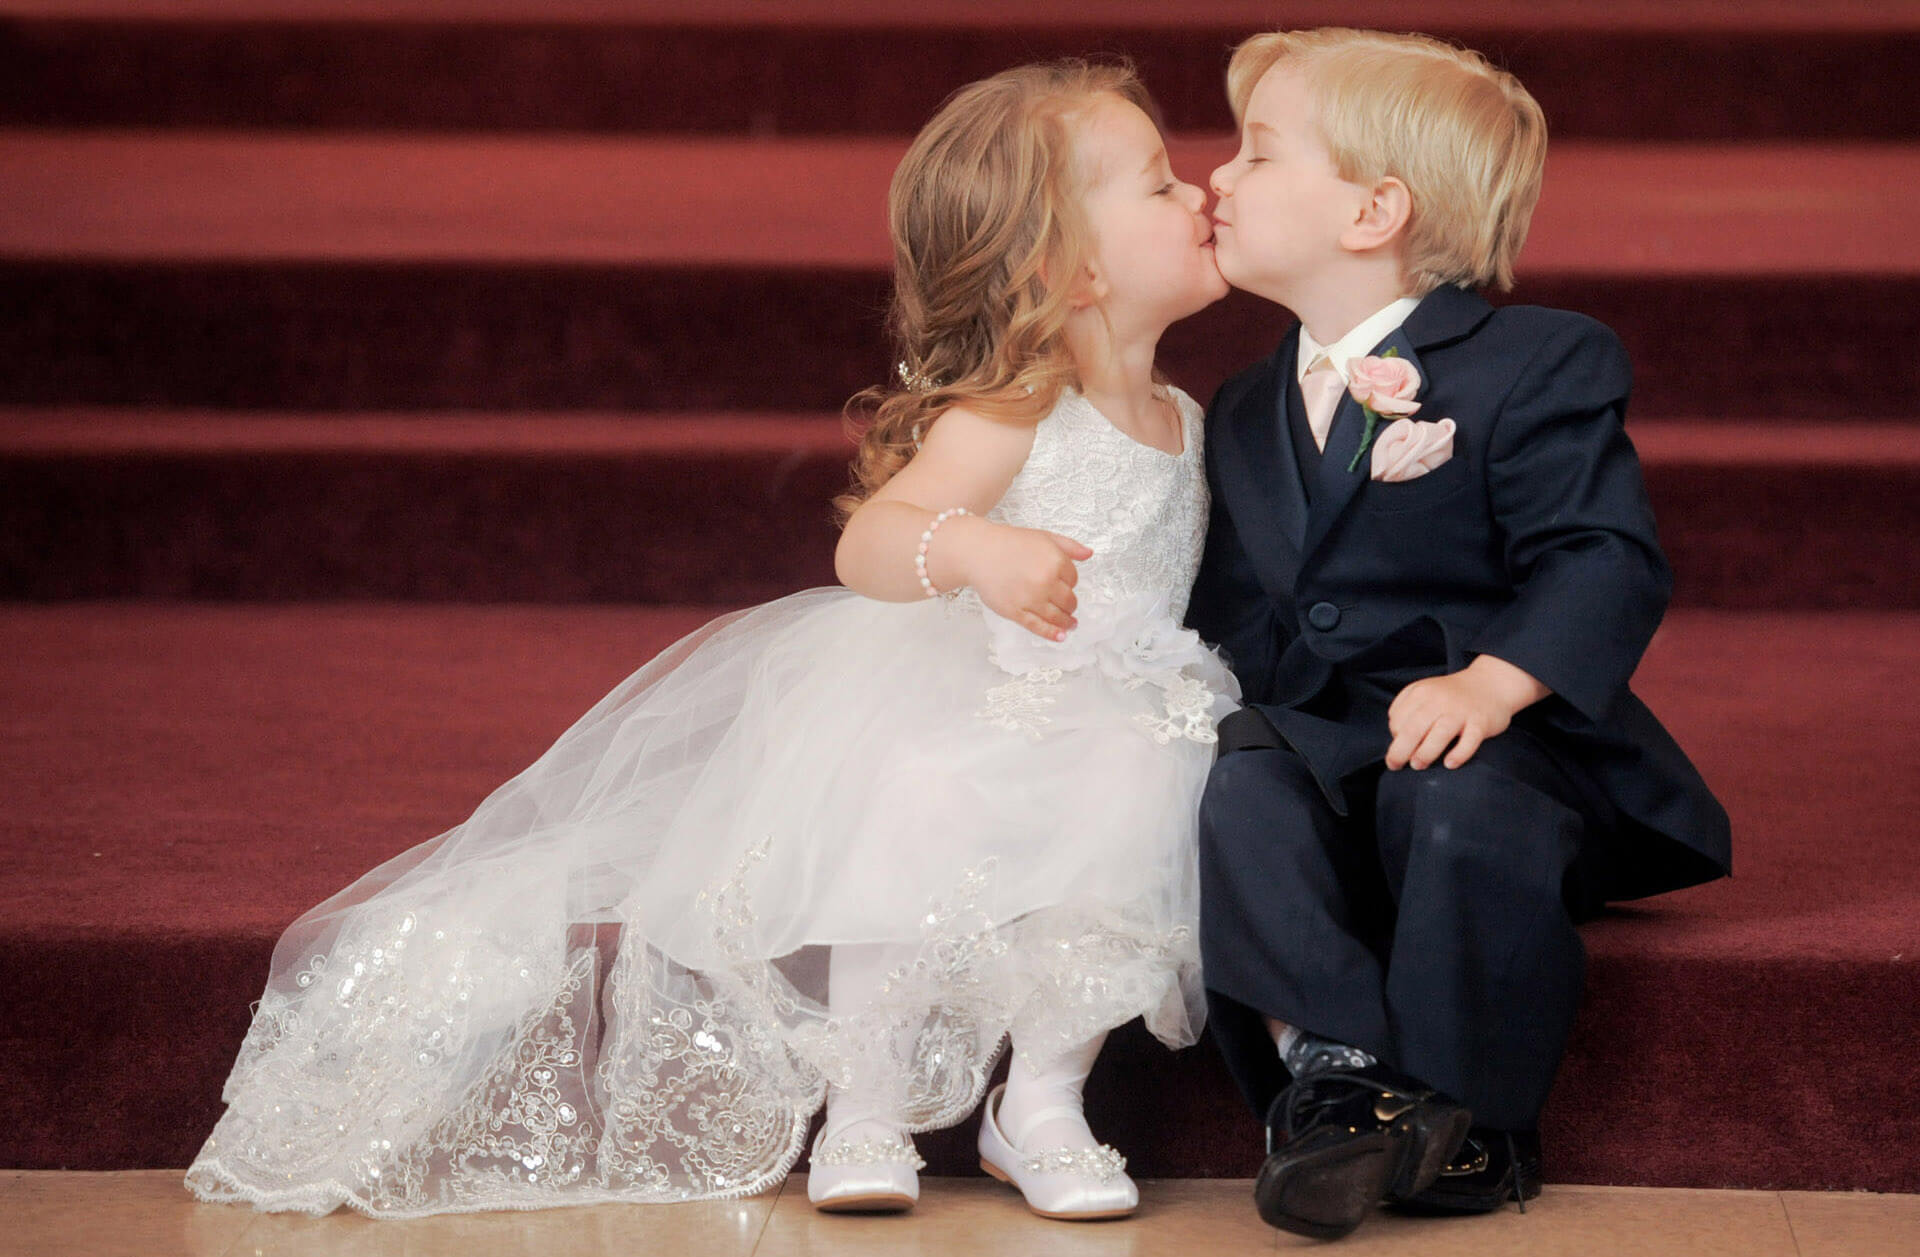 The ring bearer and flower girl share a kiss before a wedding in Metro Detroit, Michigan.